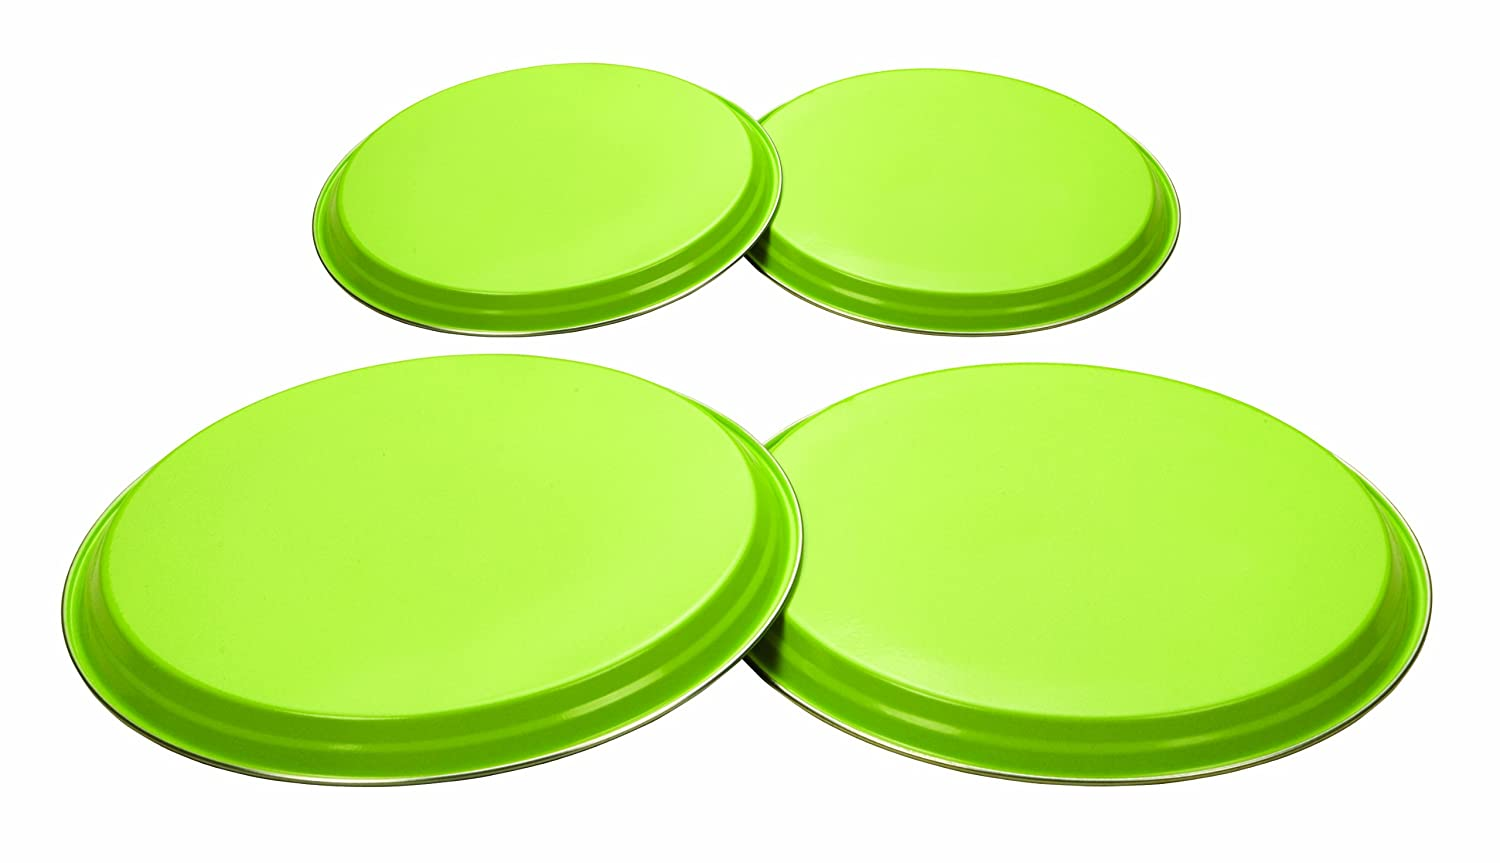 4 Piece Oven Hob Cover set - Lime Green